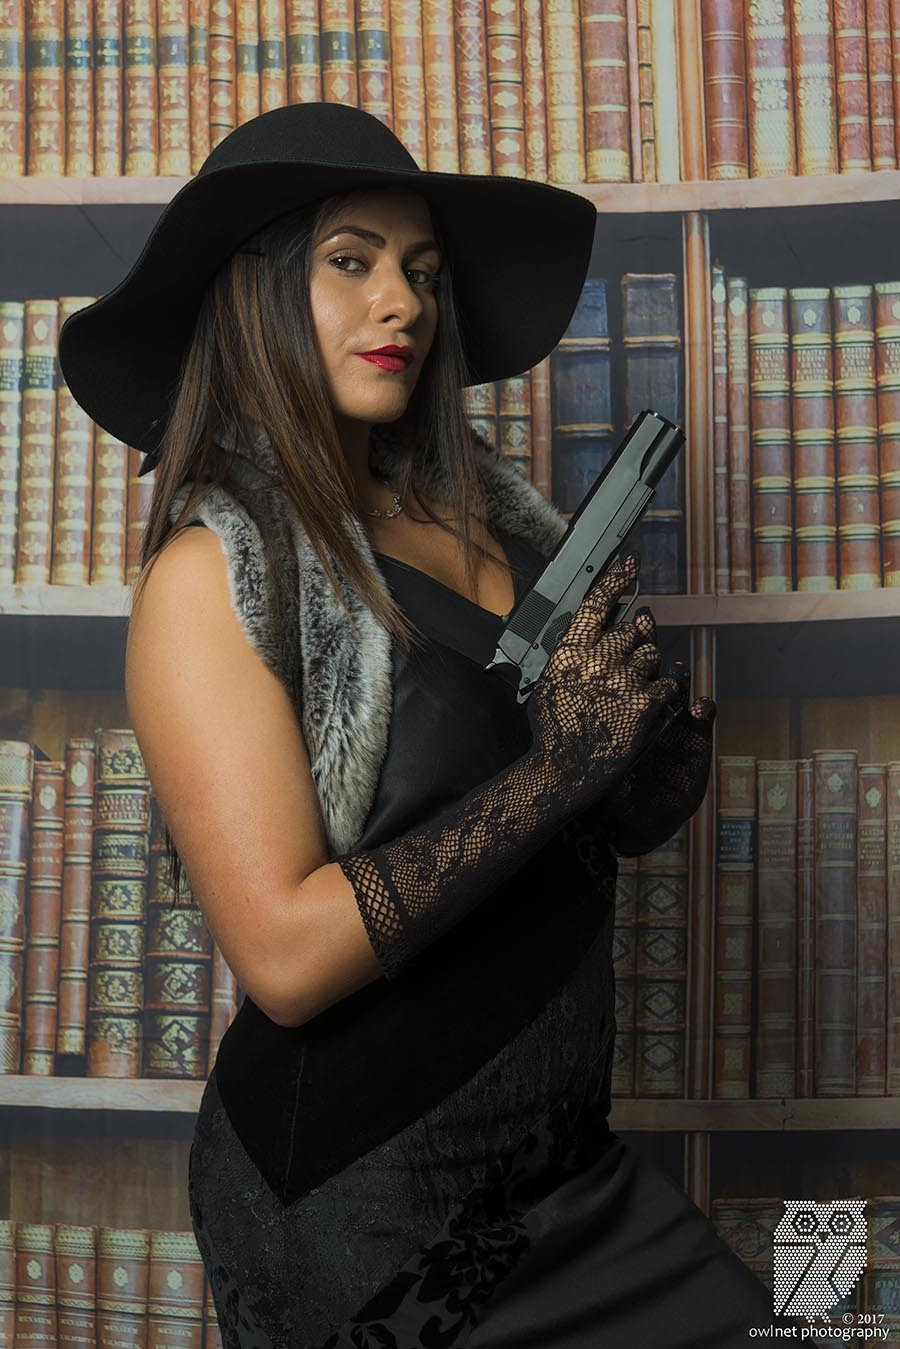 Miss Scarlett, In the Library, With the Gun / Photography by Owlnet Photography, Model SimoneH / Uploaded 22nd April 2018 @ 12:42 PM